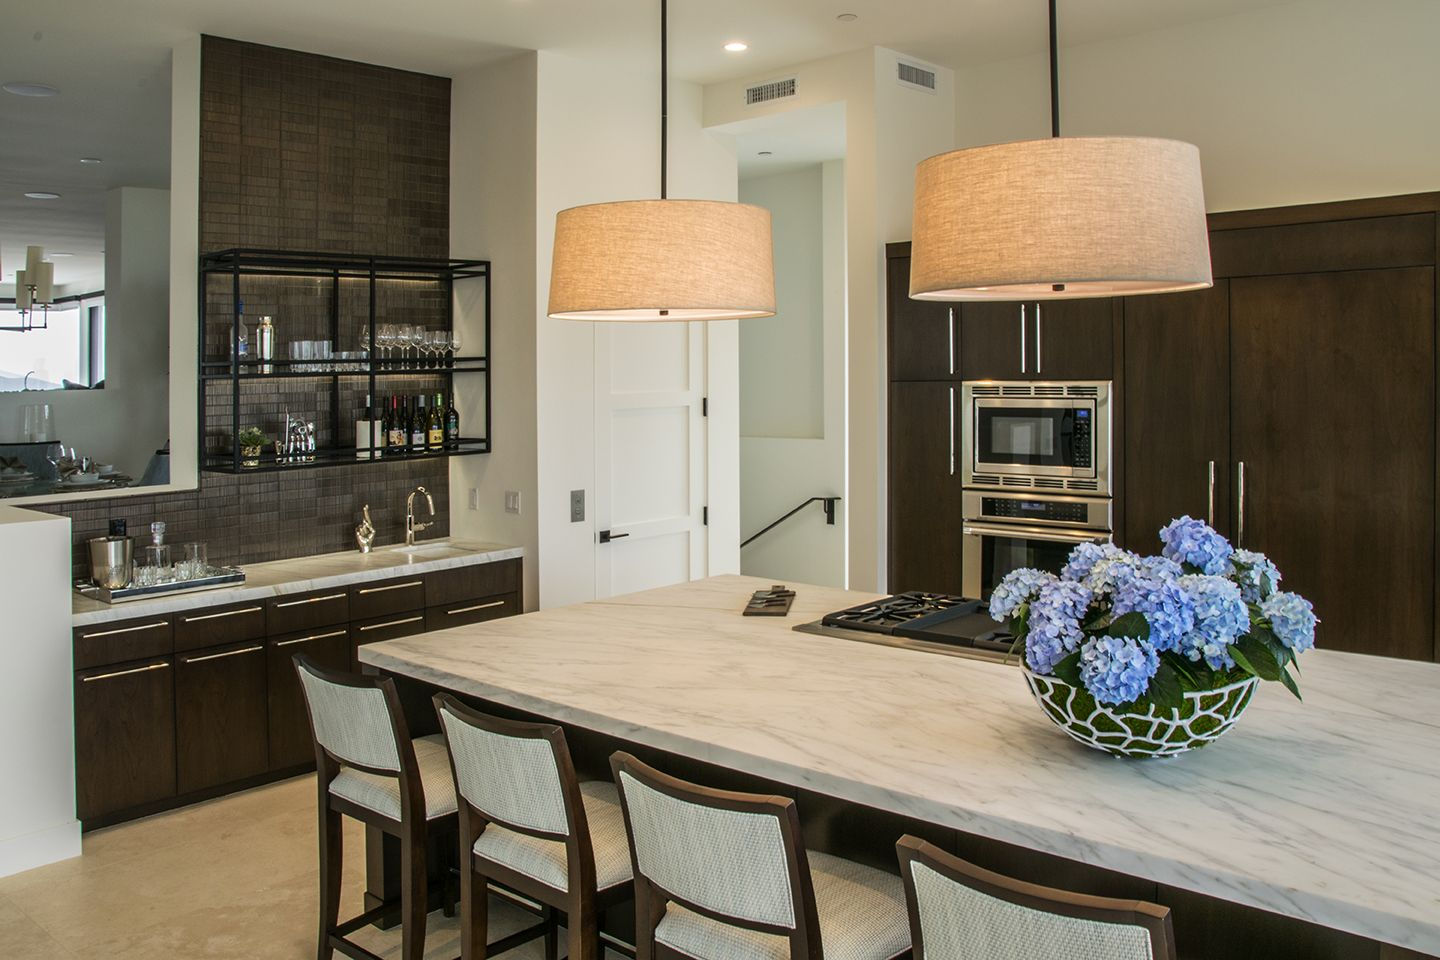 This Is A Gorgeous Kitchen From One Of Our Projects In Corona Del Mar California Check Out This Kitchen Cabinets Gorgeous Kitchens Kitchen Design Home Decor